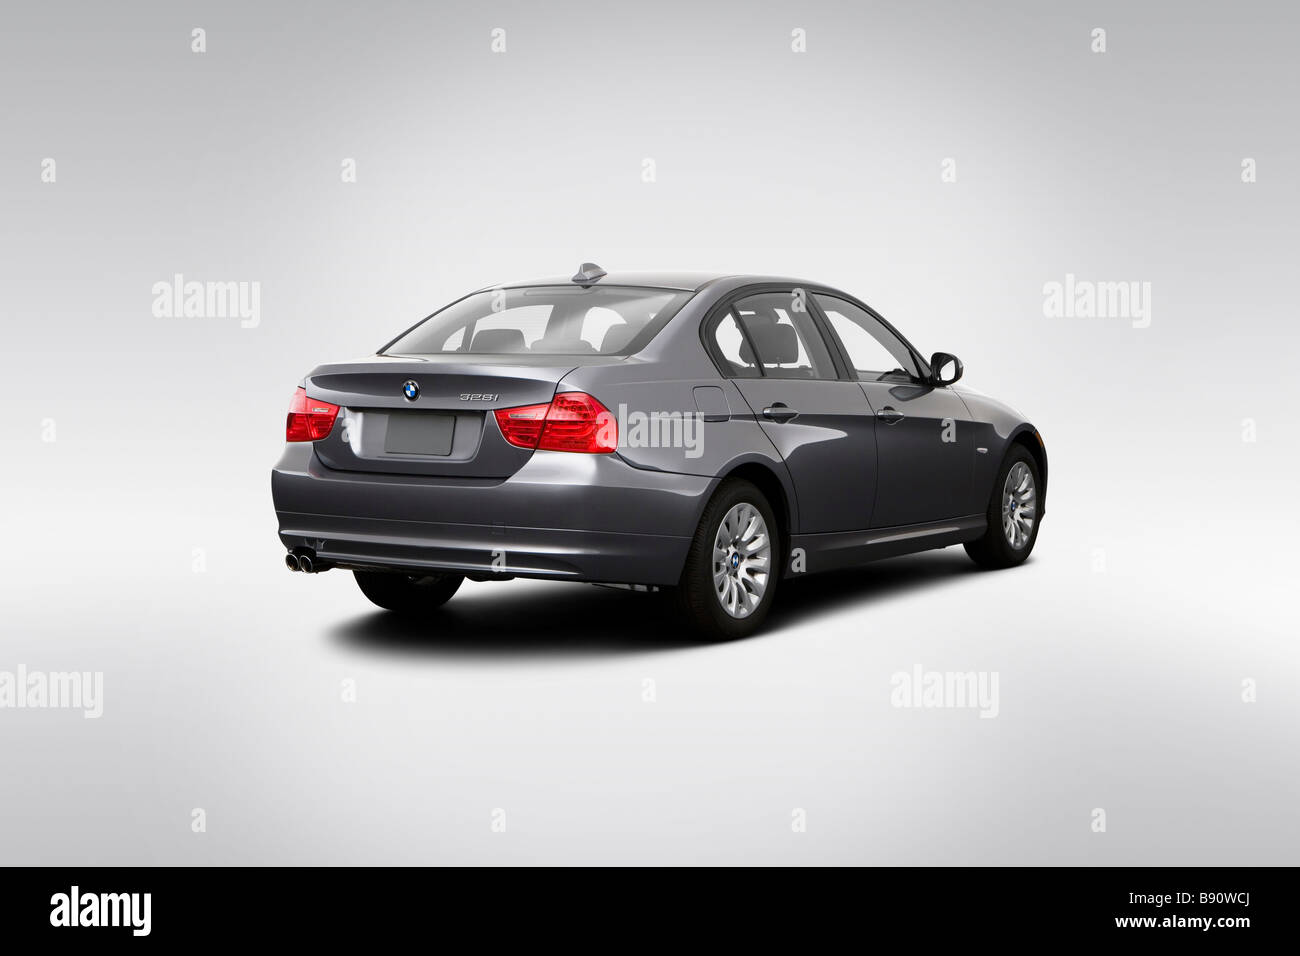 hight resolution of 2009 bmw 3 series 328i in gray rear angle view